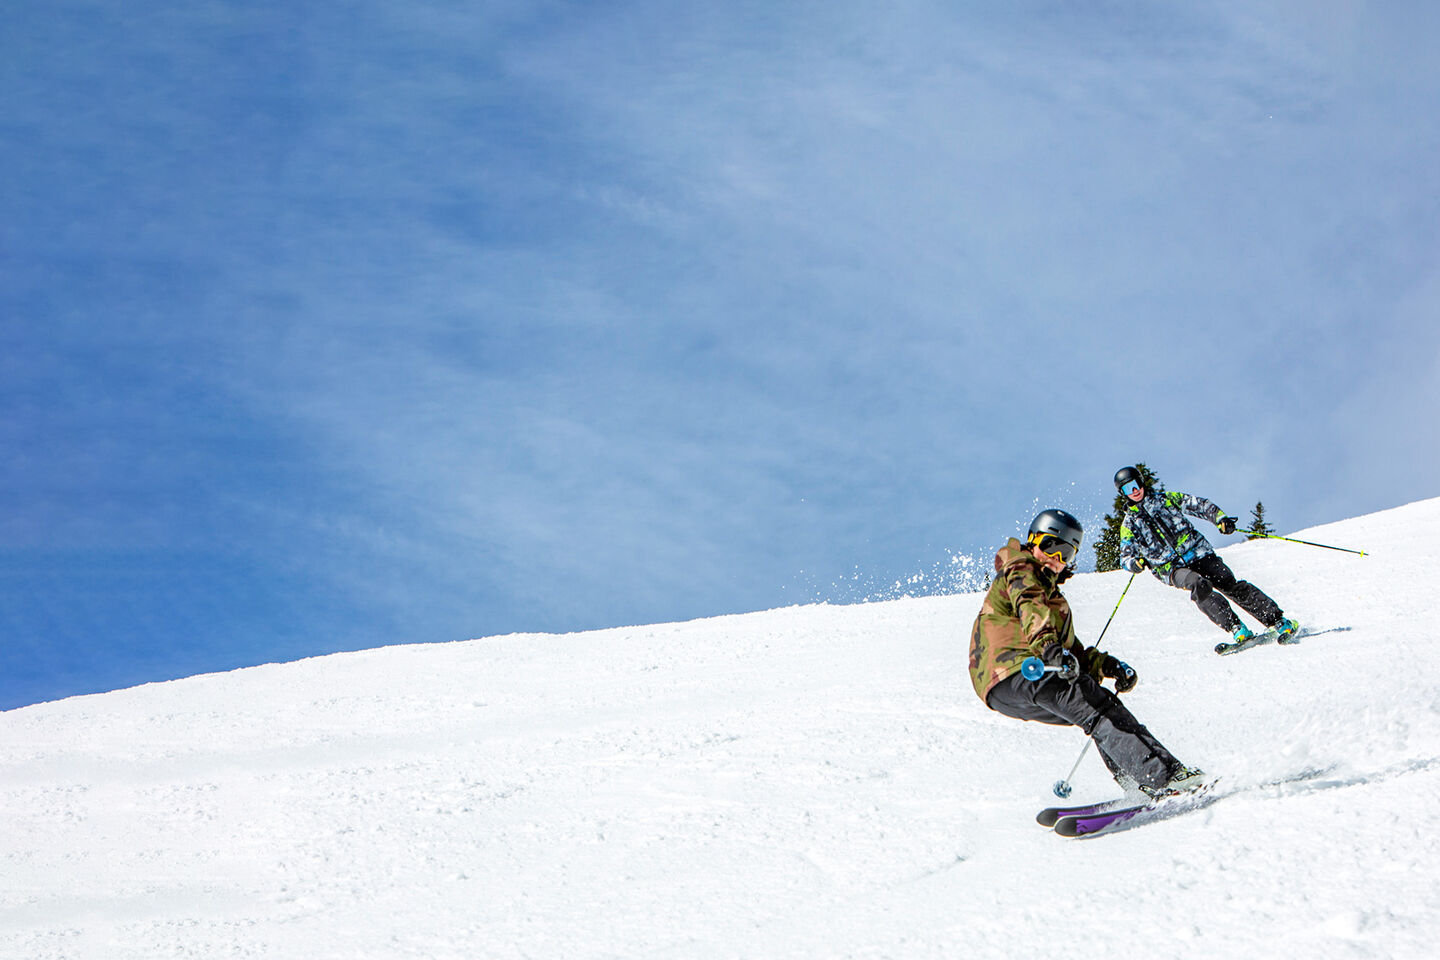 skier and snowboarding riding on mountain blue bird day